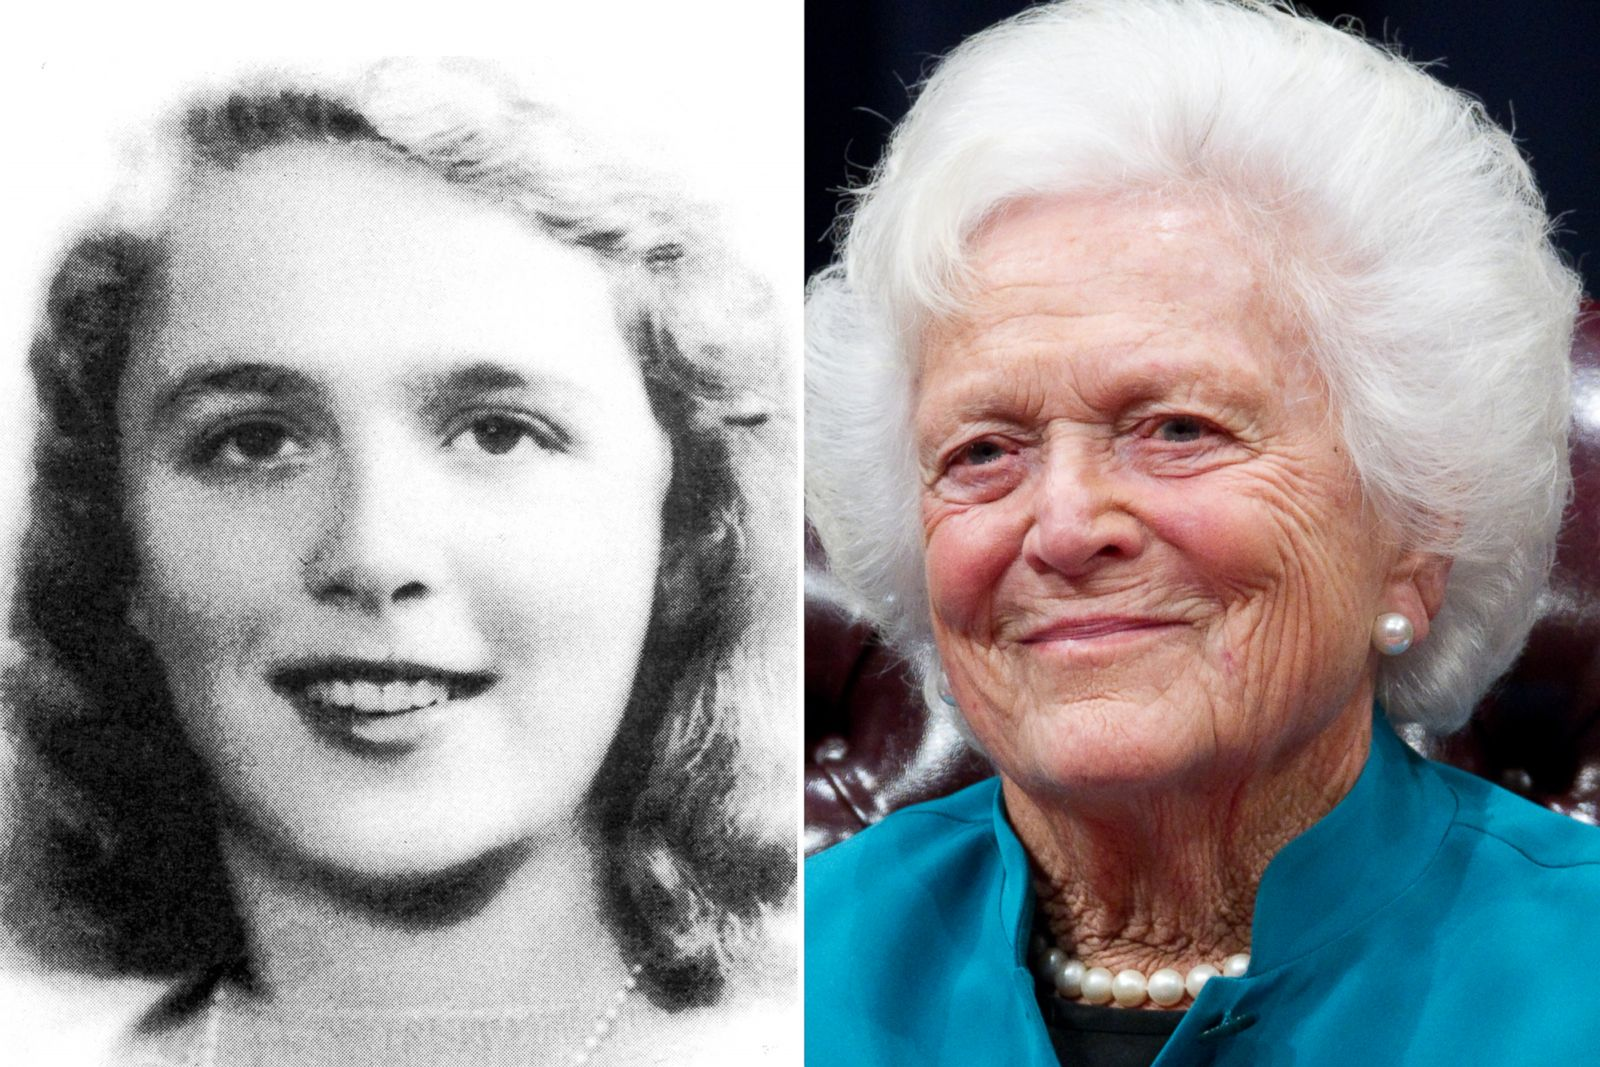 ' ' from the web at 'https://s.abcnews.com/images/Entertainment/HT-GTY-Barbara-Bush-ml-170608_3x2_1600.jpg'